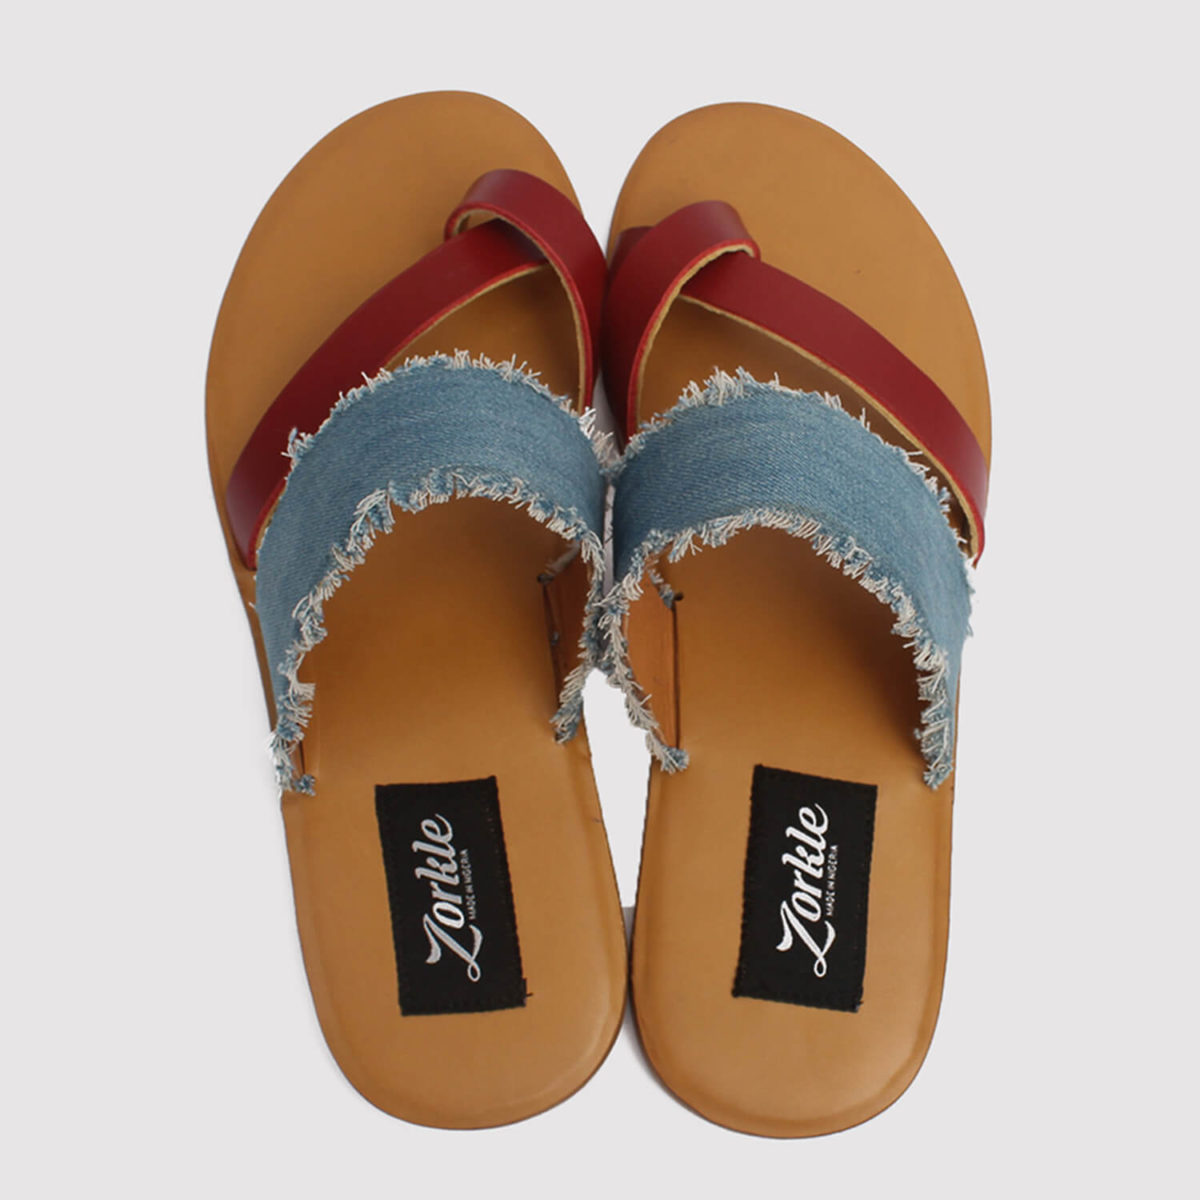 juss denim arc slippers red leather by zorkle shoes in lagos nigeria